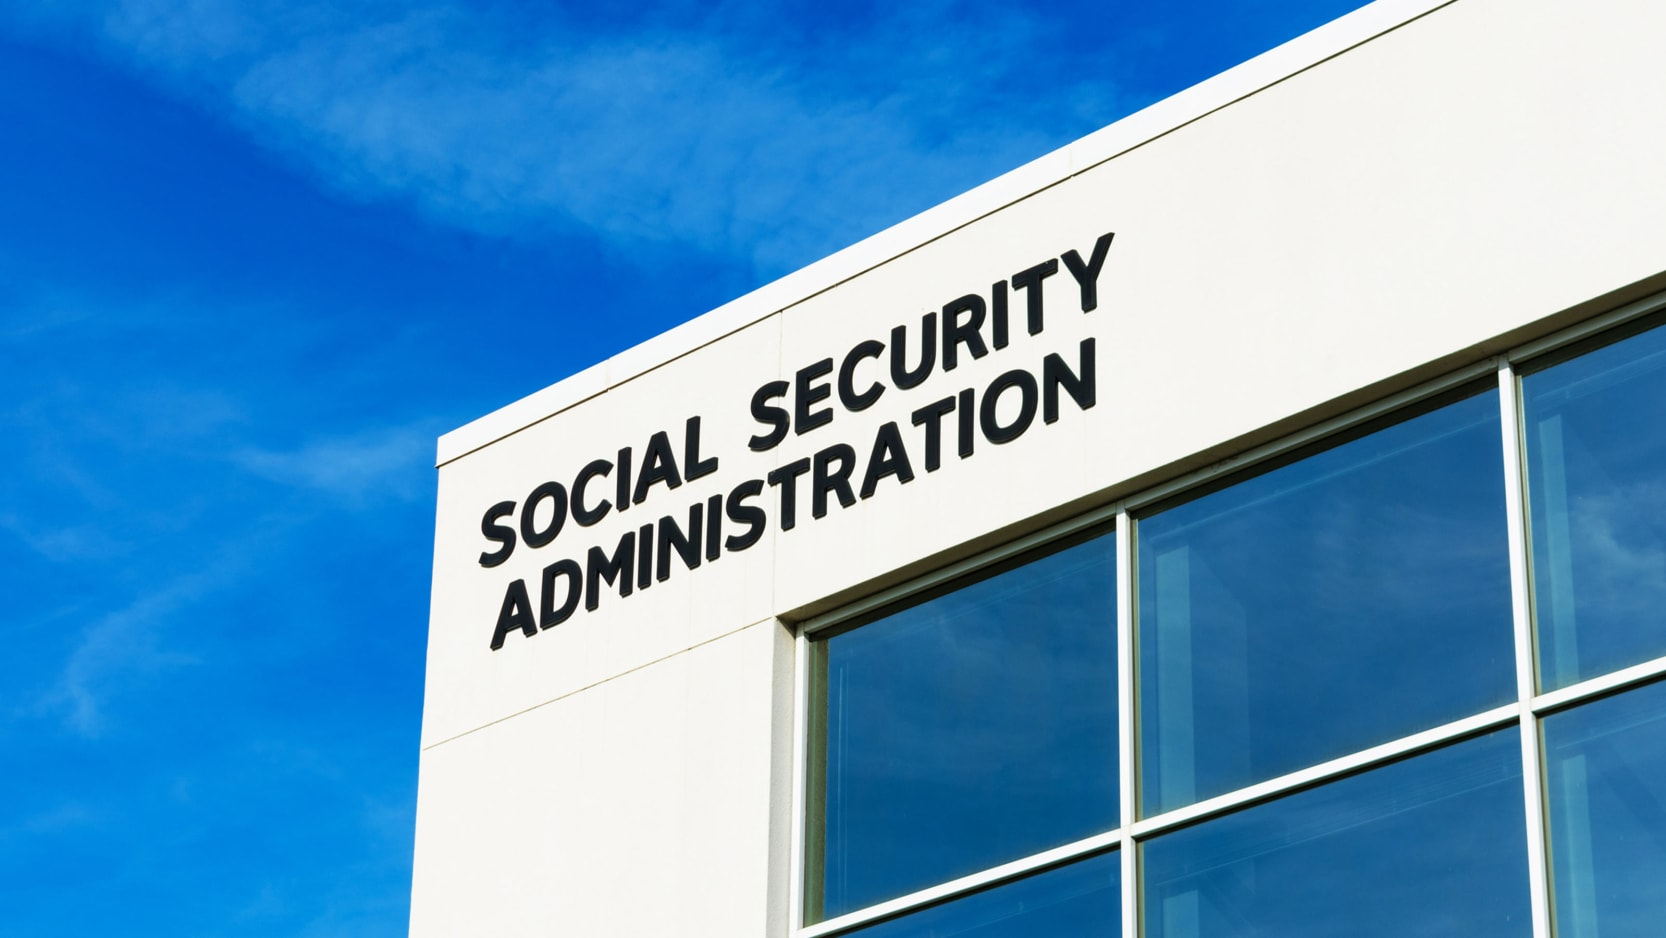 The Social Security Administration building.